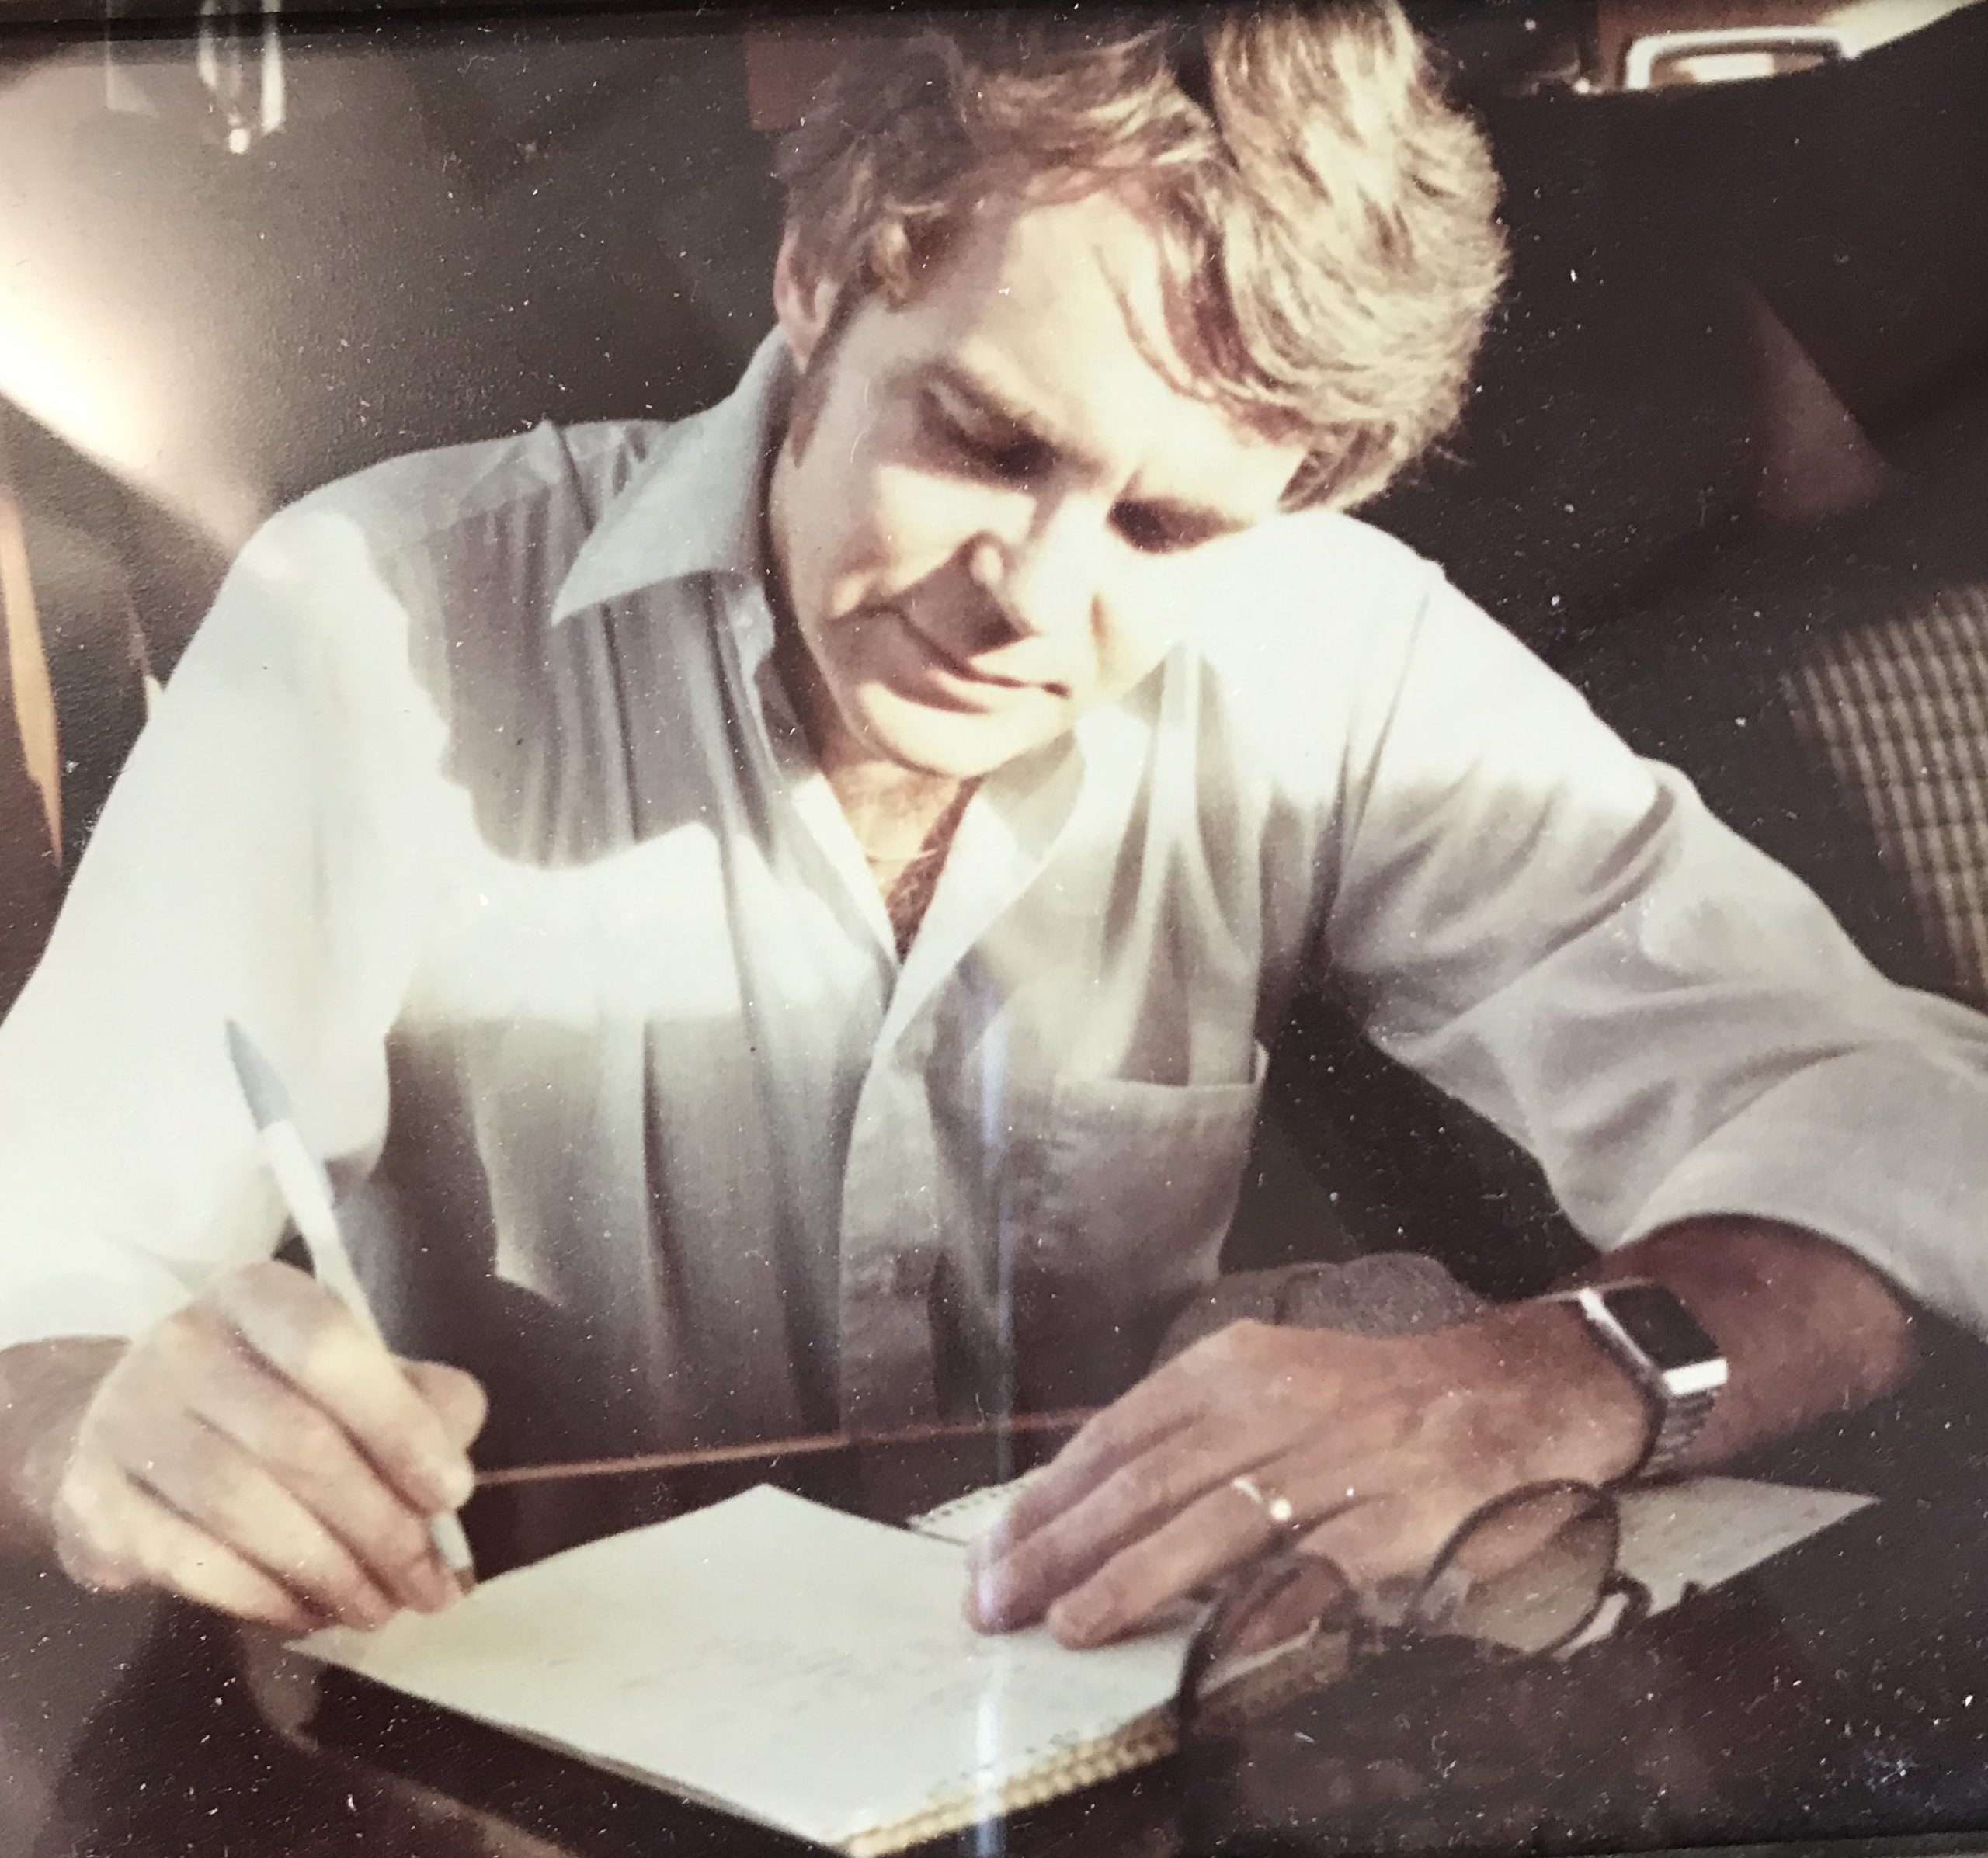 Man leaning over writing page with pen in hand